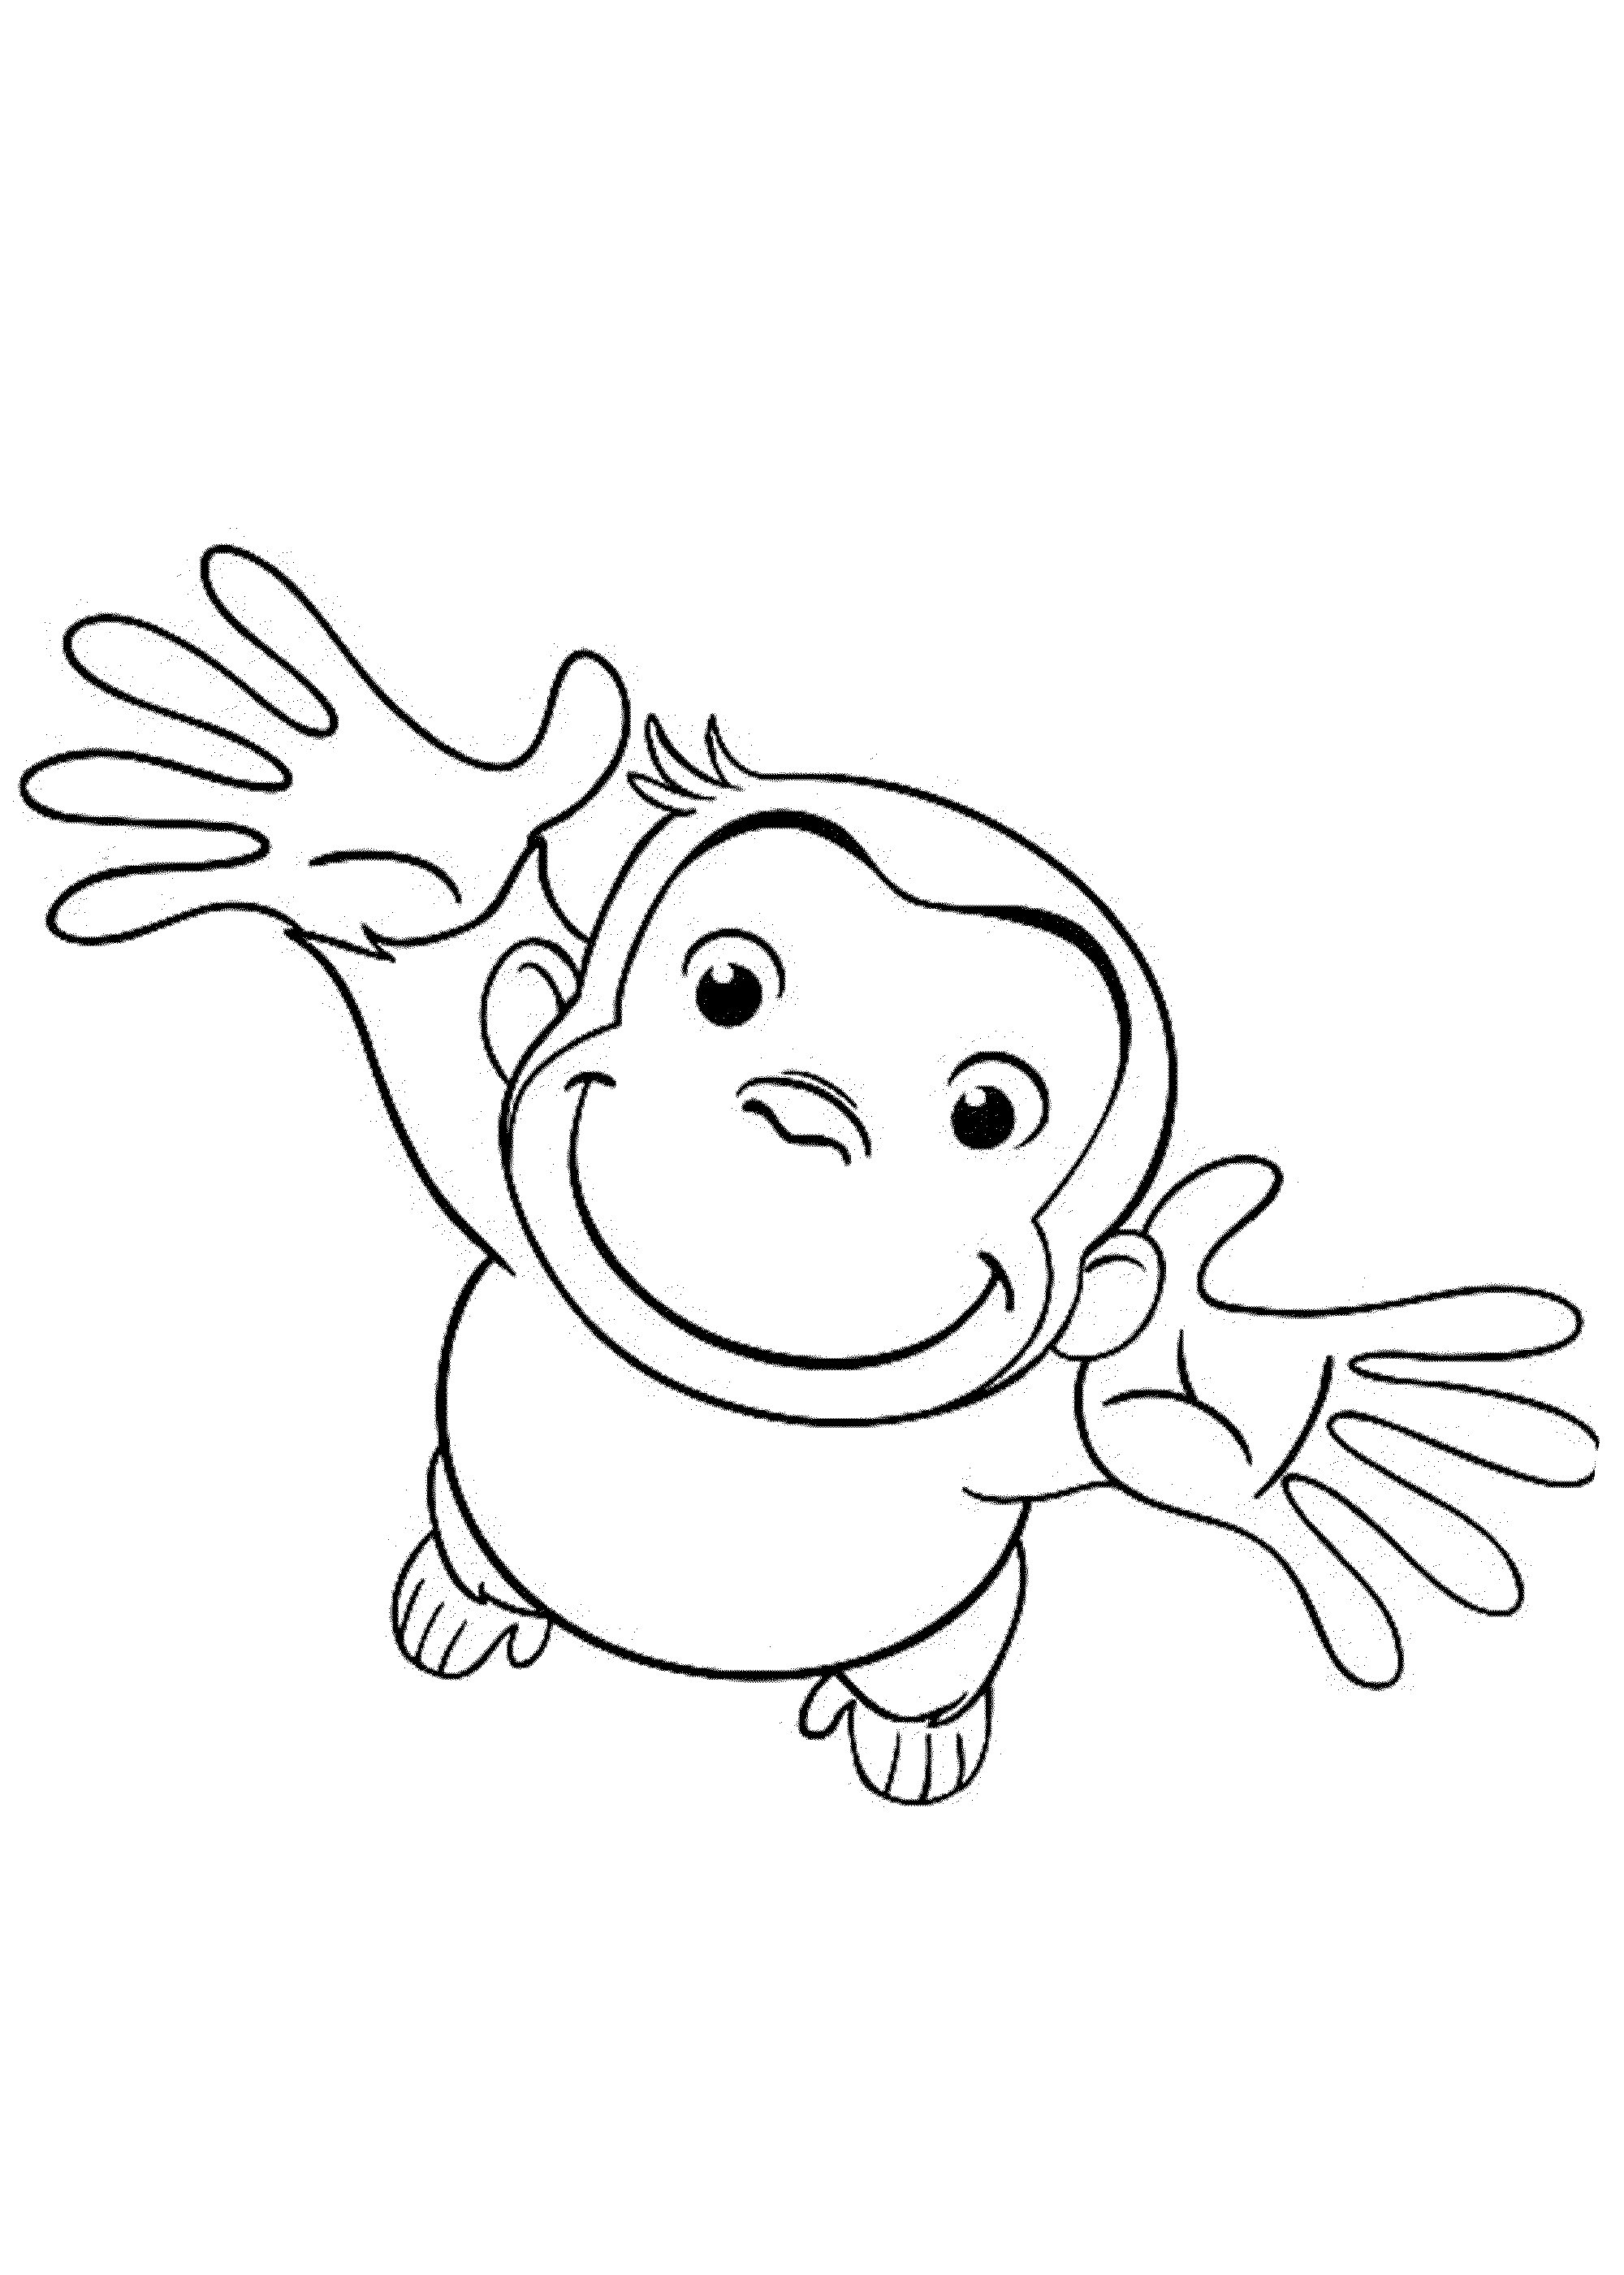 curious george coloring pages curious george coloring pages george curious pages coloring